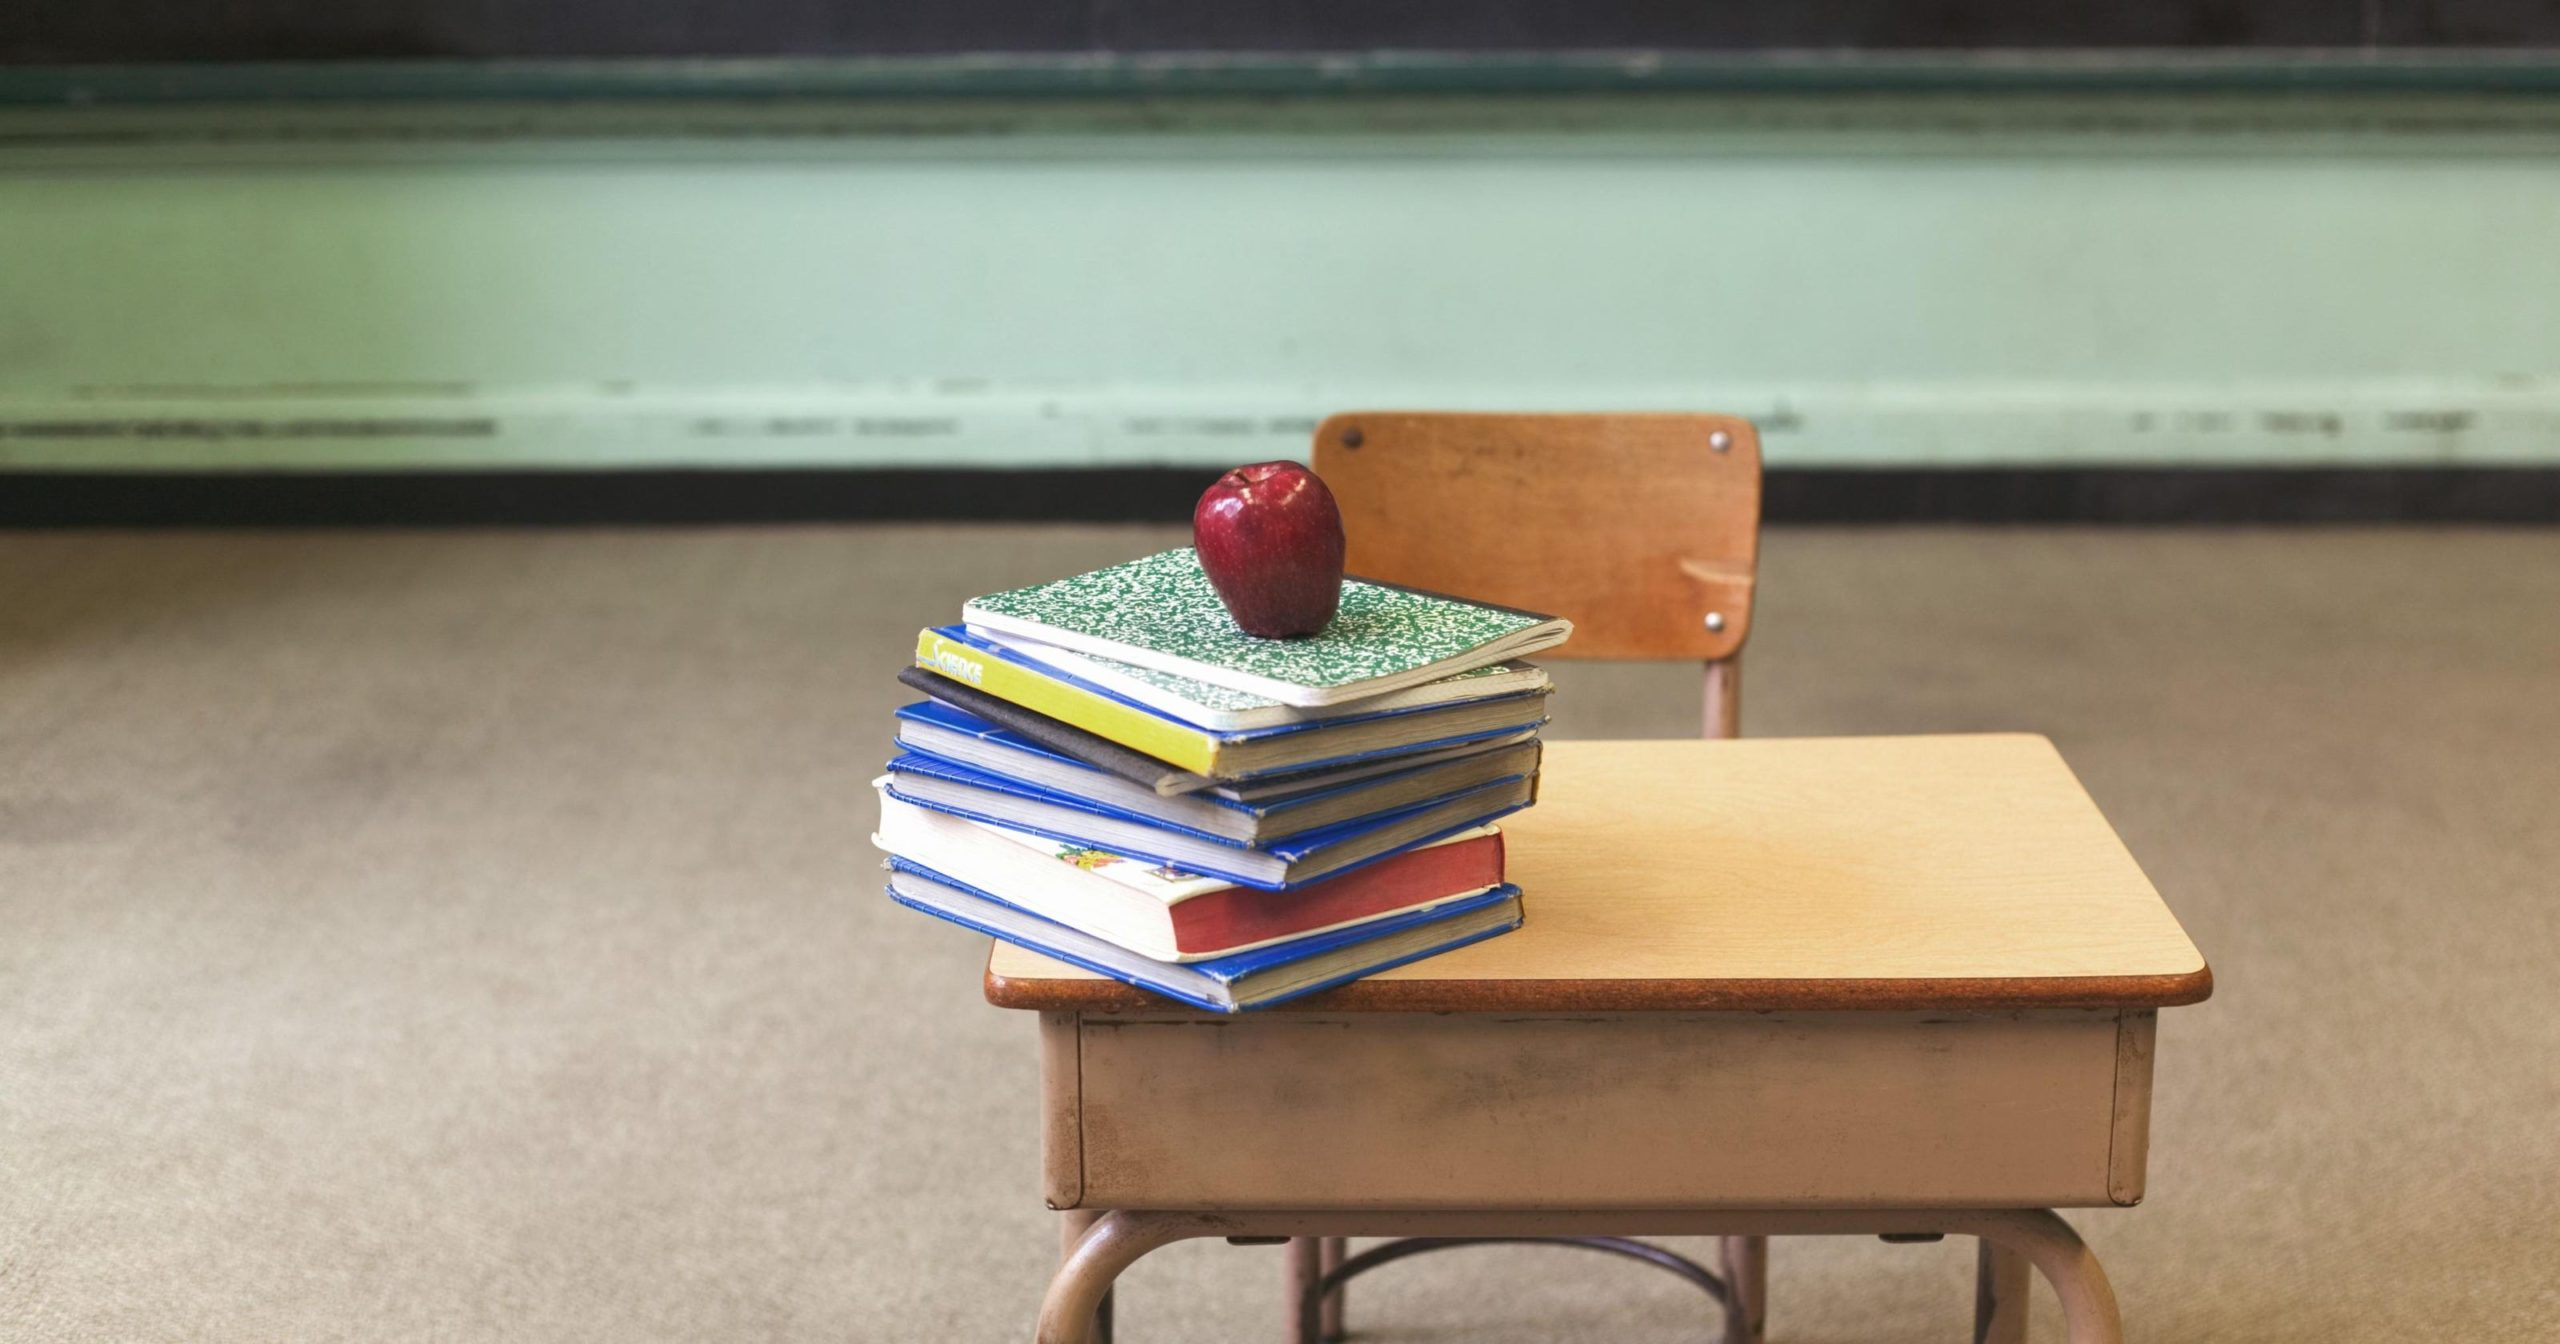 Appeals court rejects challenge to controversial Florida education law